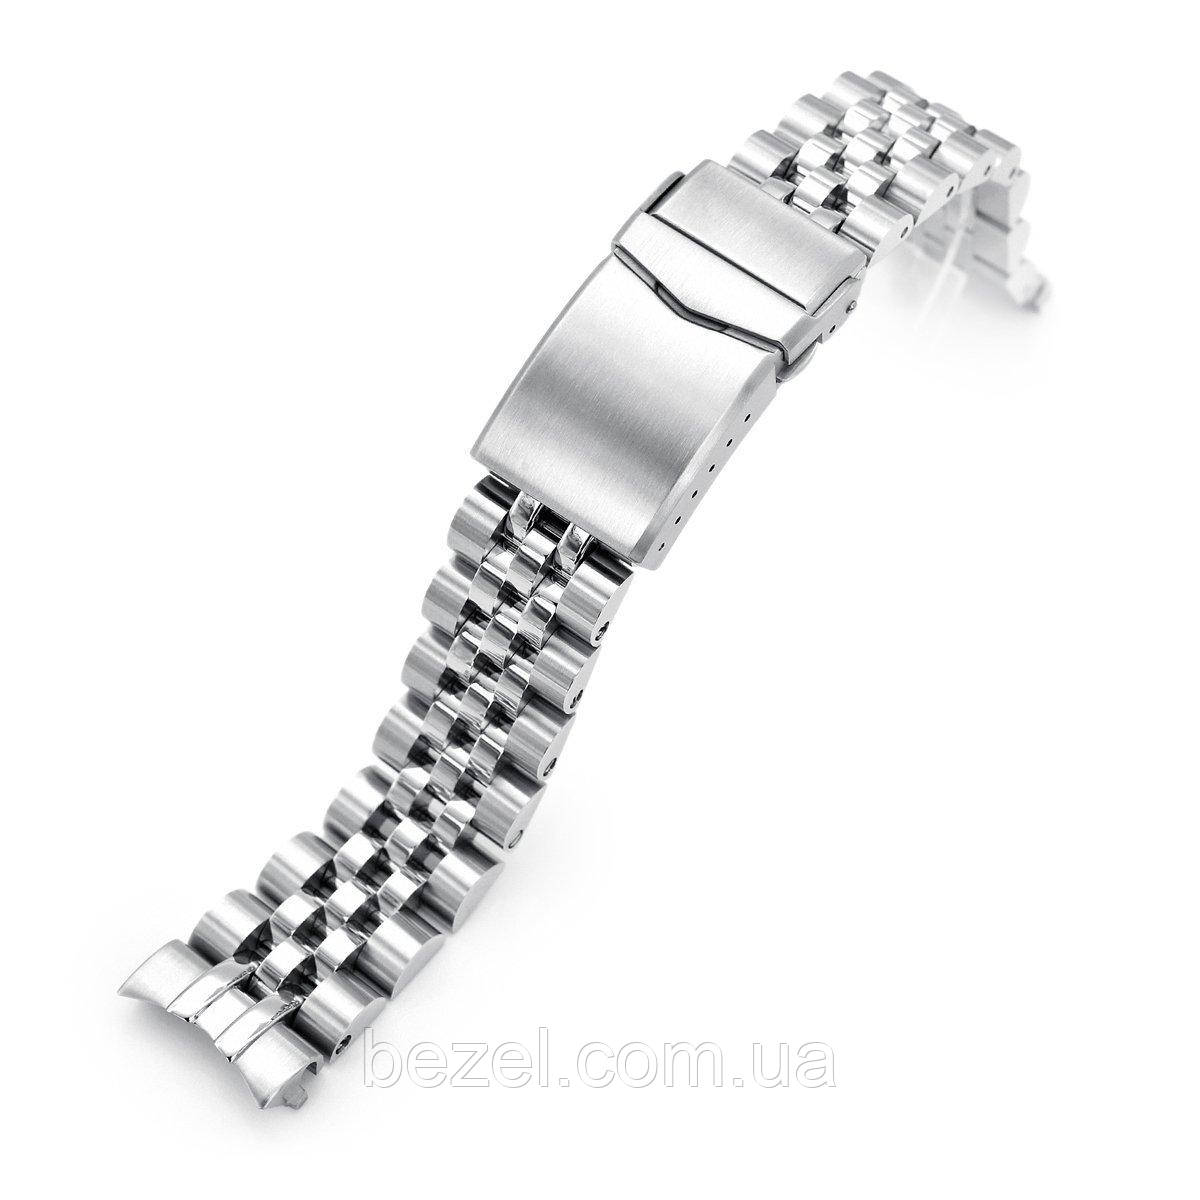 20mm ANGUS Jubilee 316L Stainless Steel Watch Bracelet for Seiko Cocktail SSA345, V-Clasp